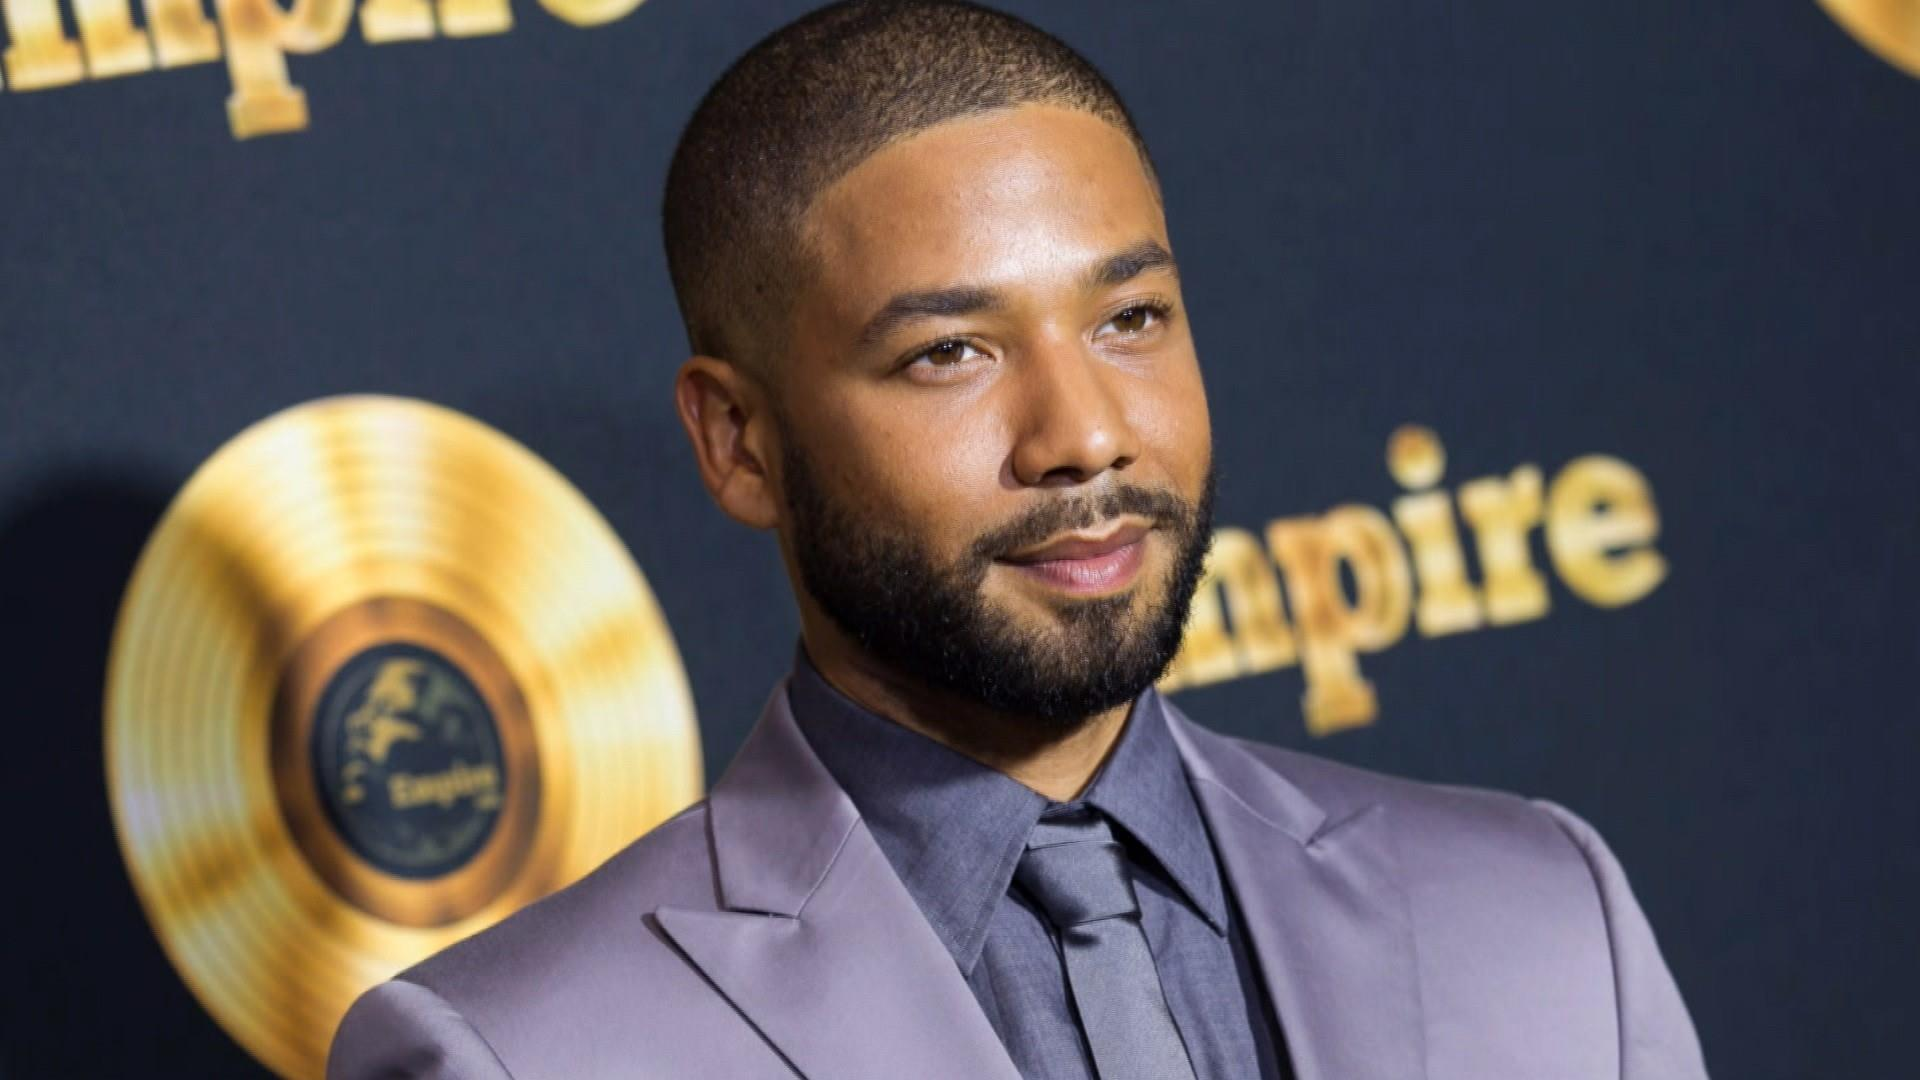 Analyst: Police must have 'overwhelming evidence' in Smollett case